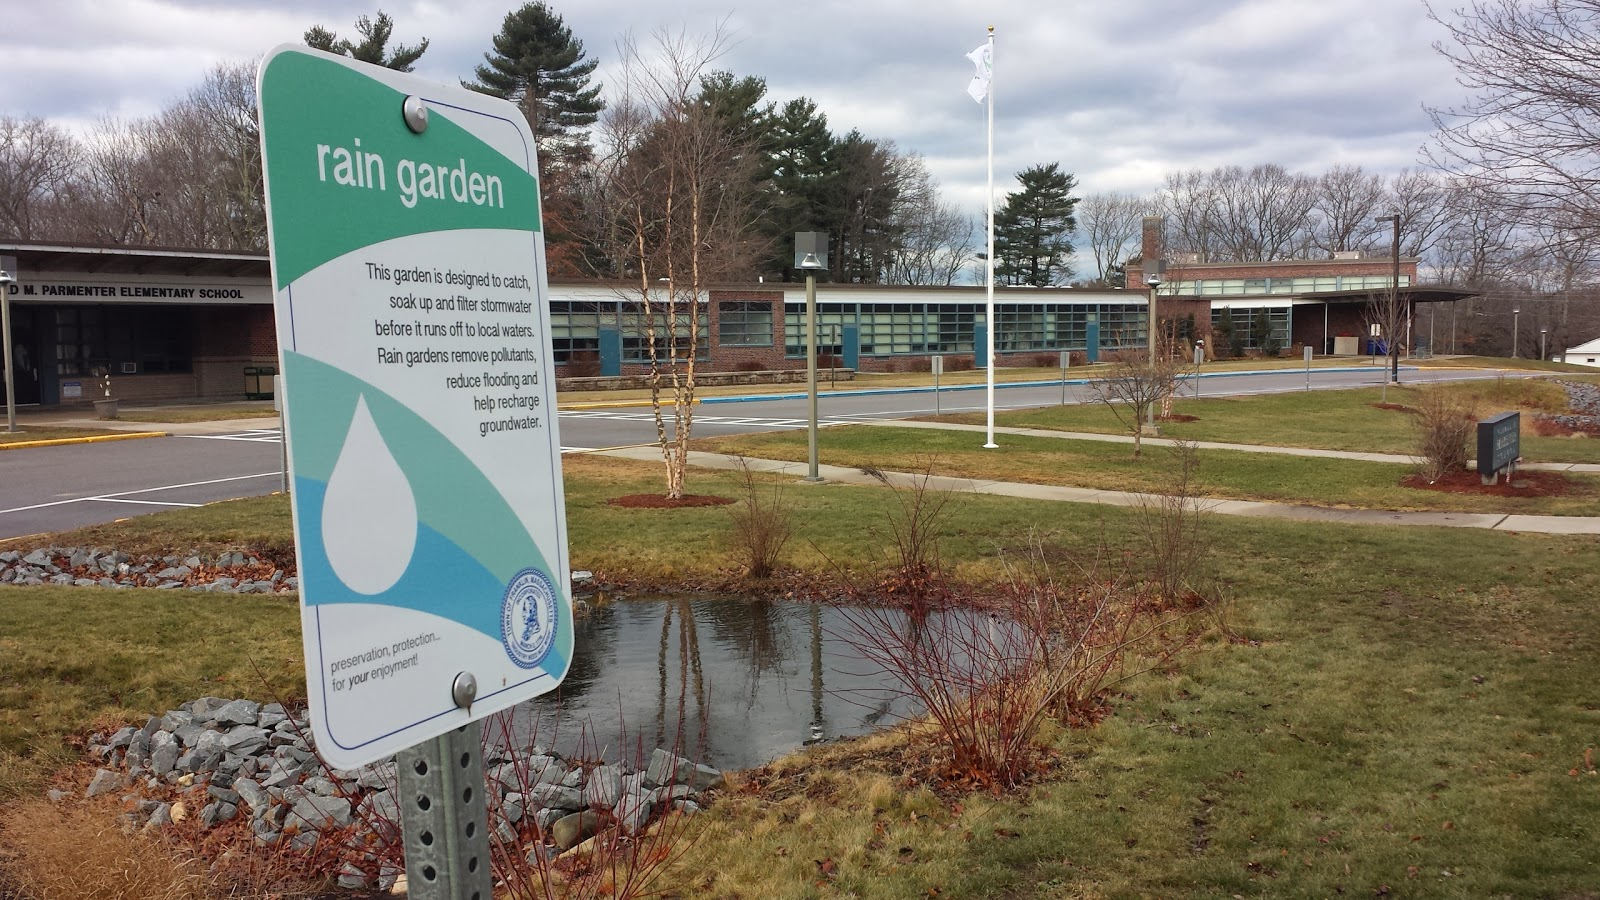 rain garden at the Parmenter School